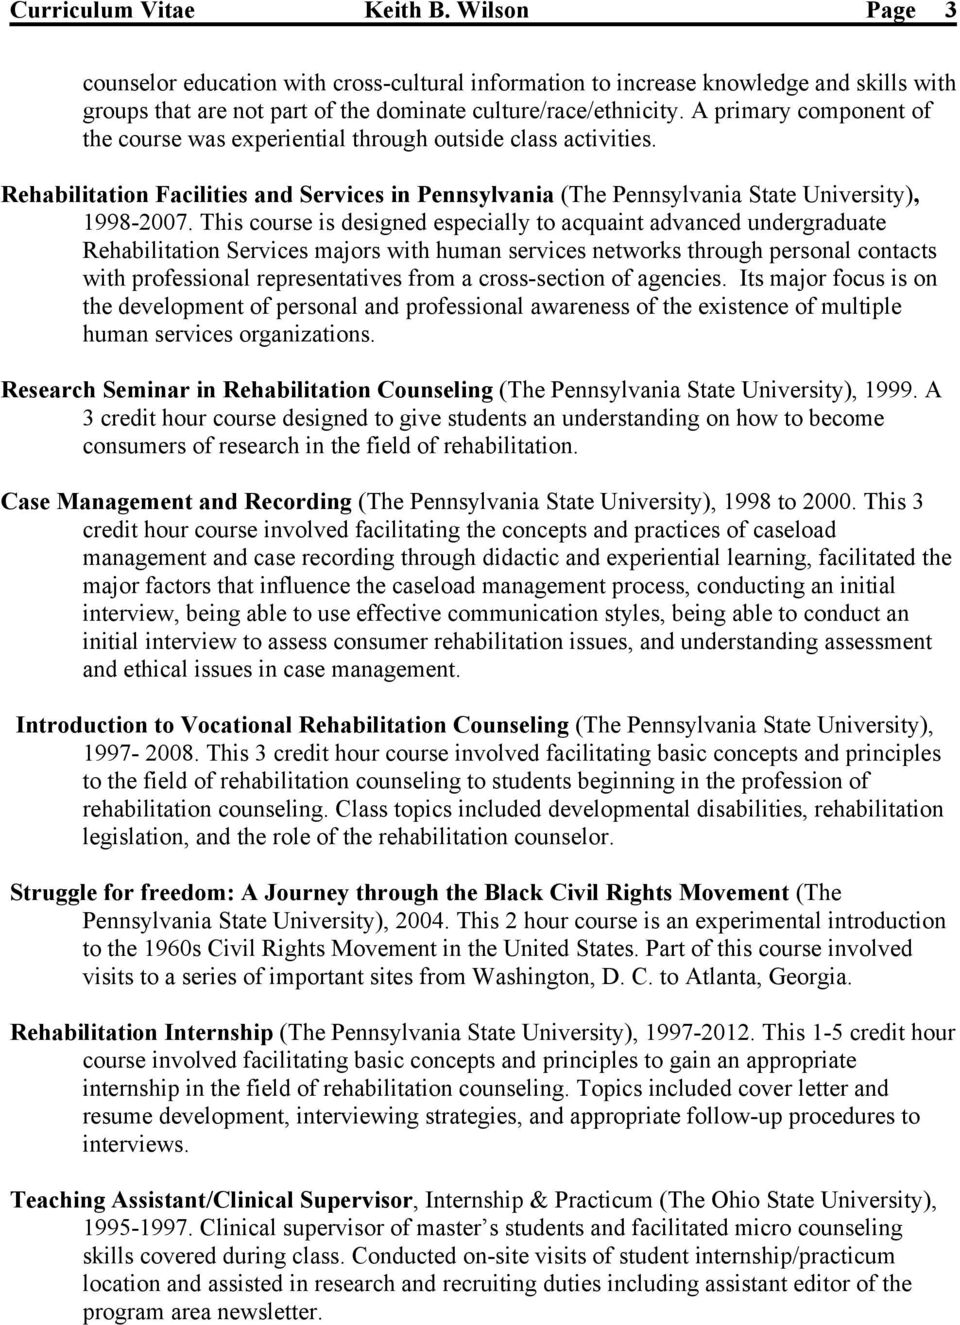 Cover Letter For Vocational Rehabilitation Counselor Keith B Wilson Curriculum Vitae Pdf